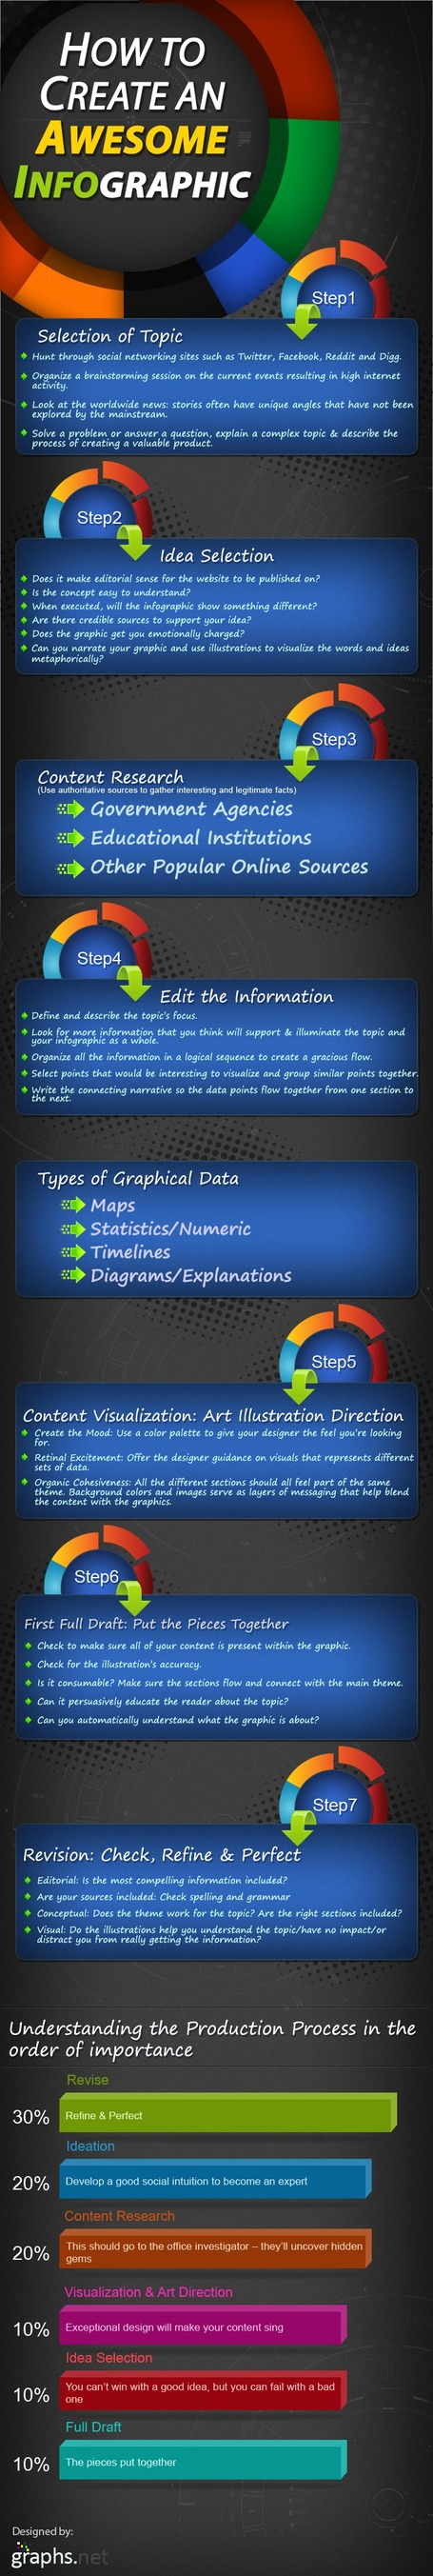 How to Create an Awesome Infographic | Graphs.net | Infographics in het onderwijs | Scoop.it